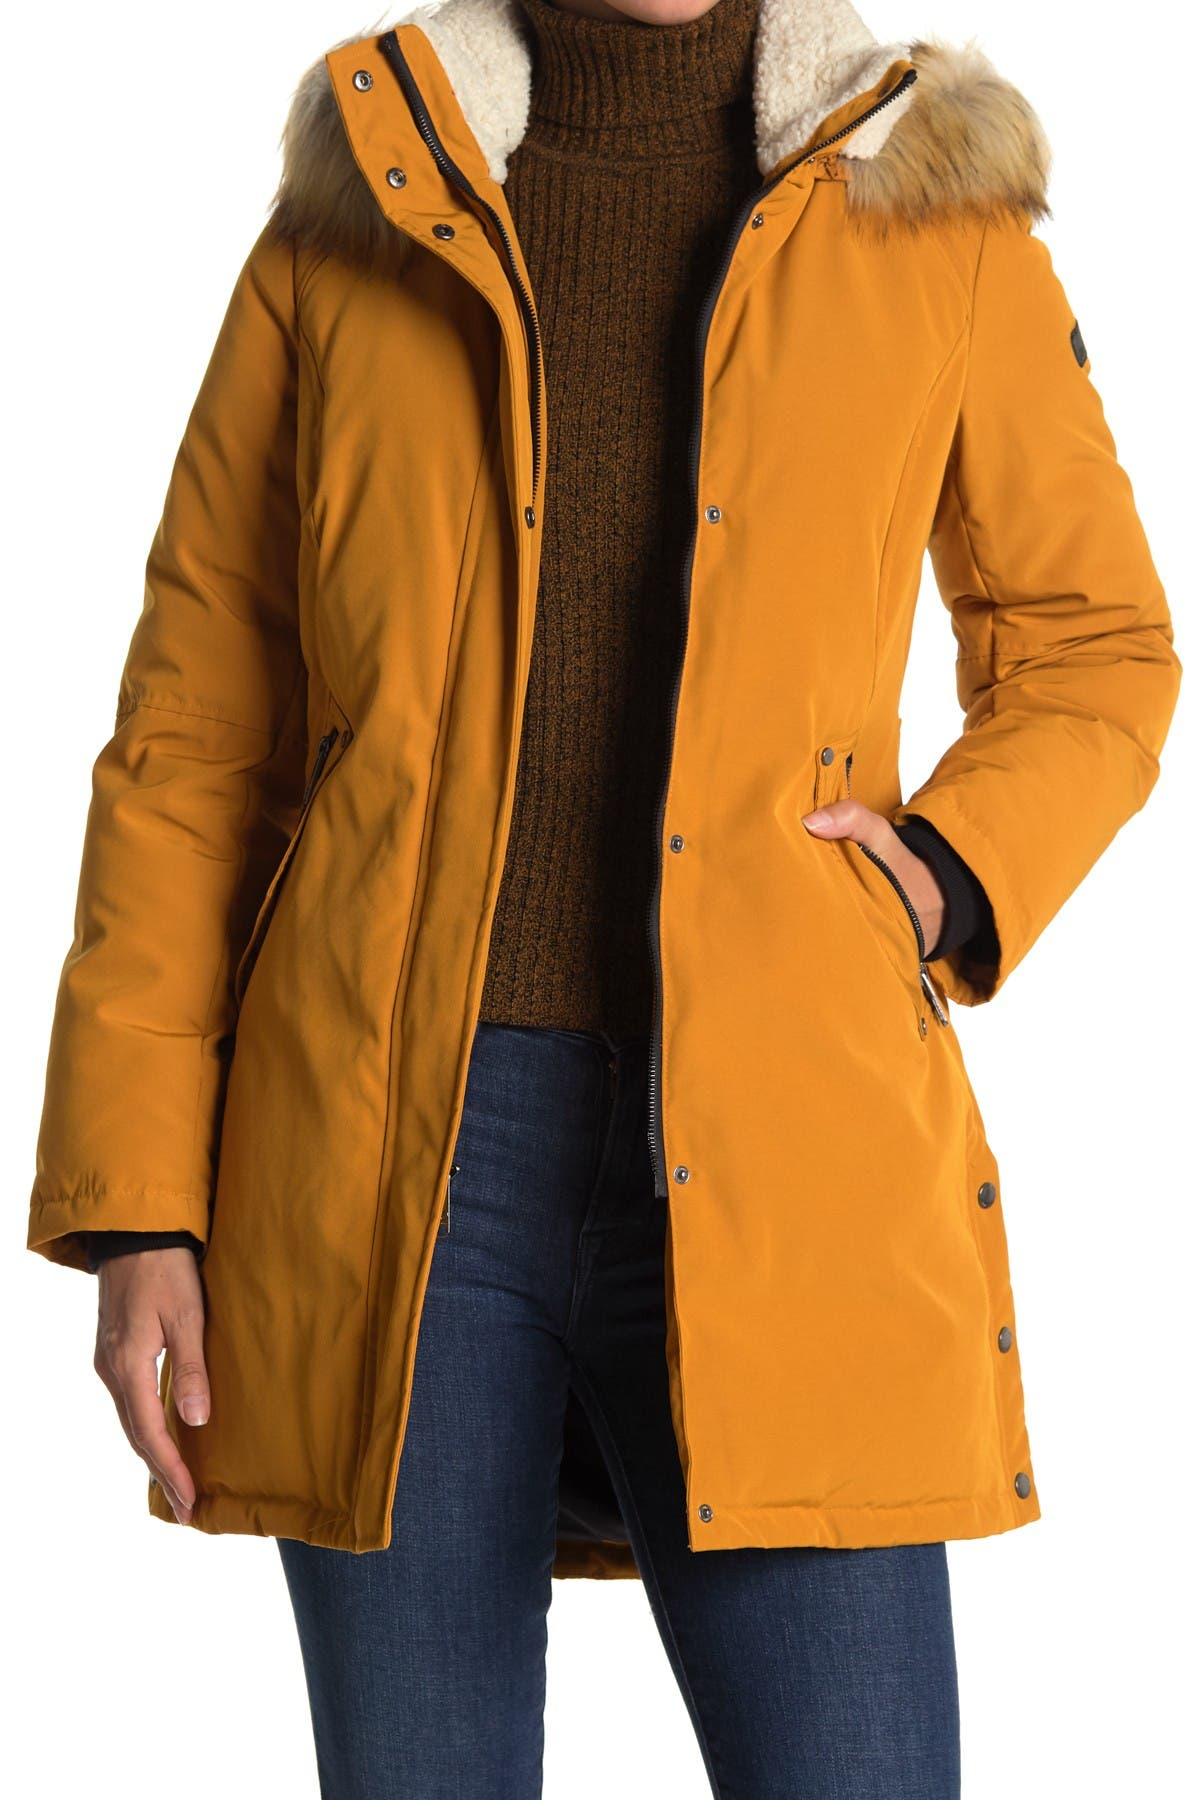 DKNY Girls Winter Coat Heavyweight Anorak Parka Jacket with Removable Faux-Fur Lined Hood